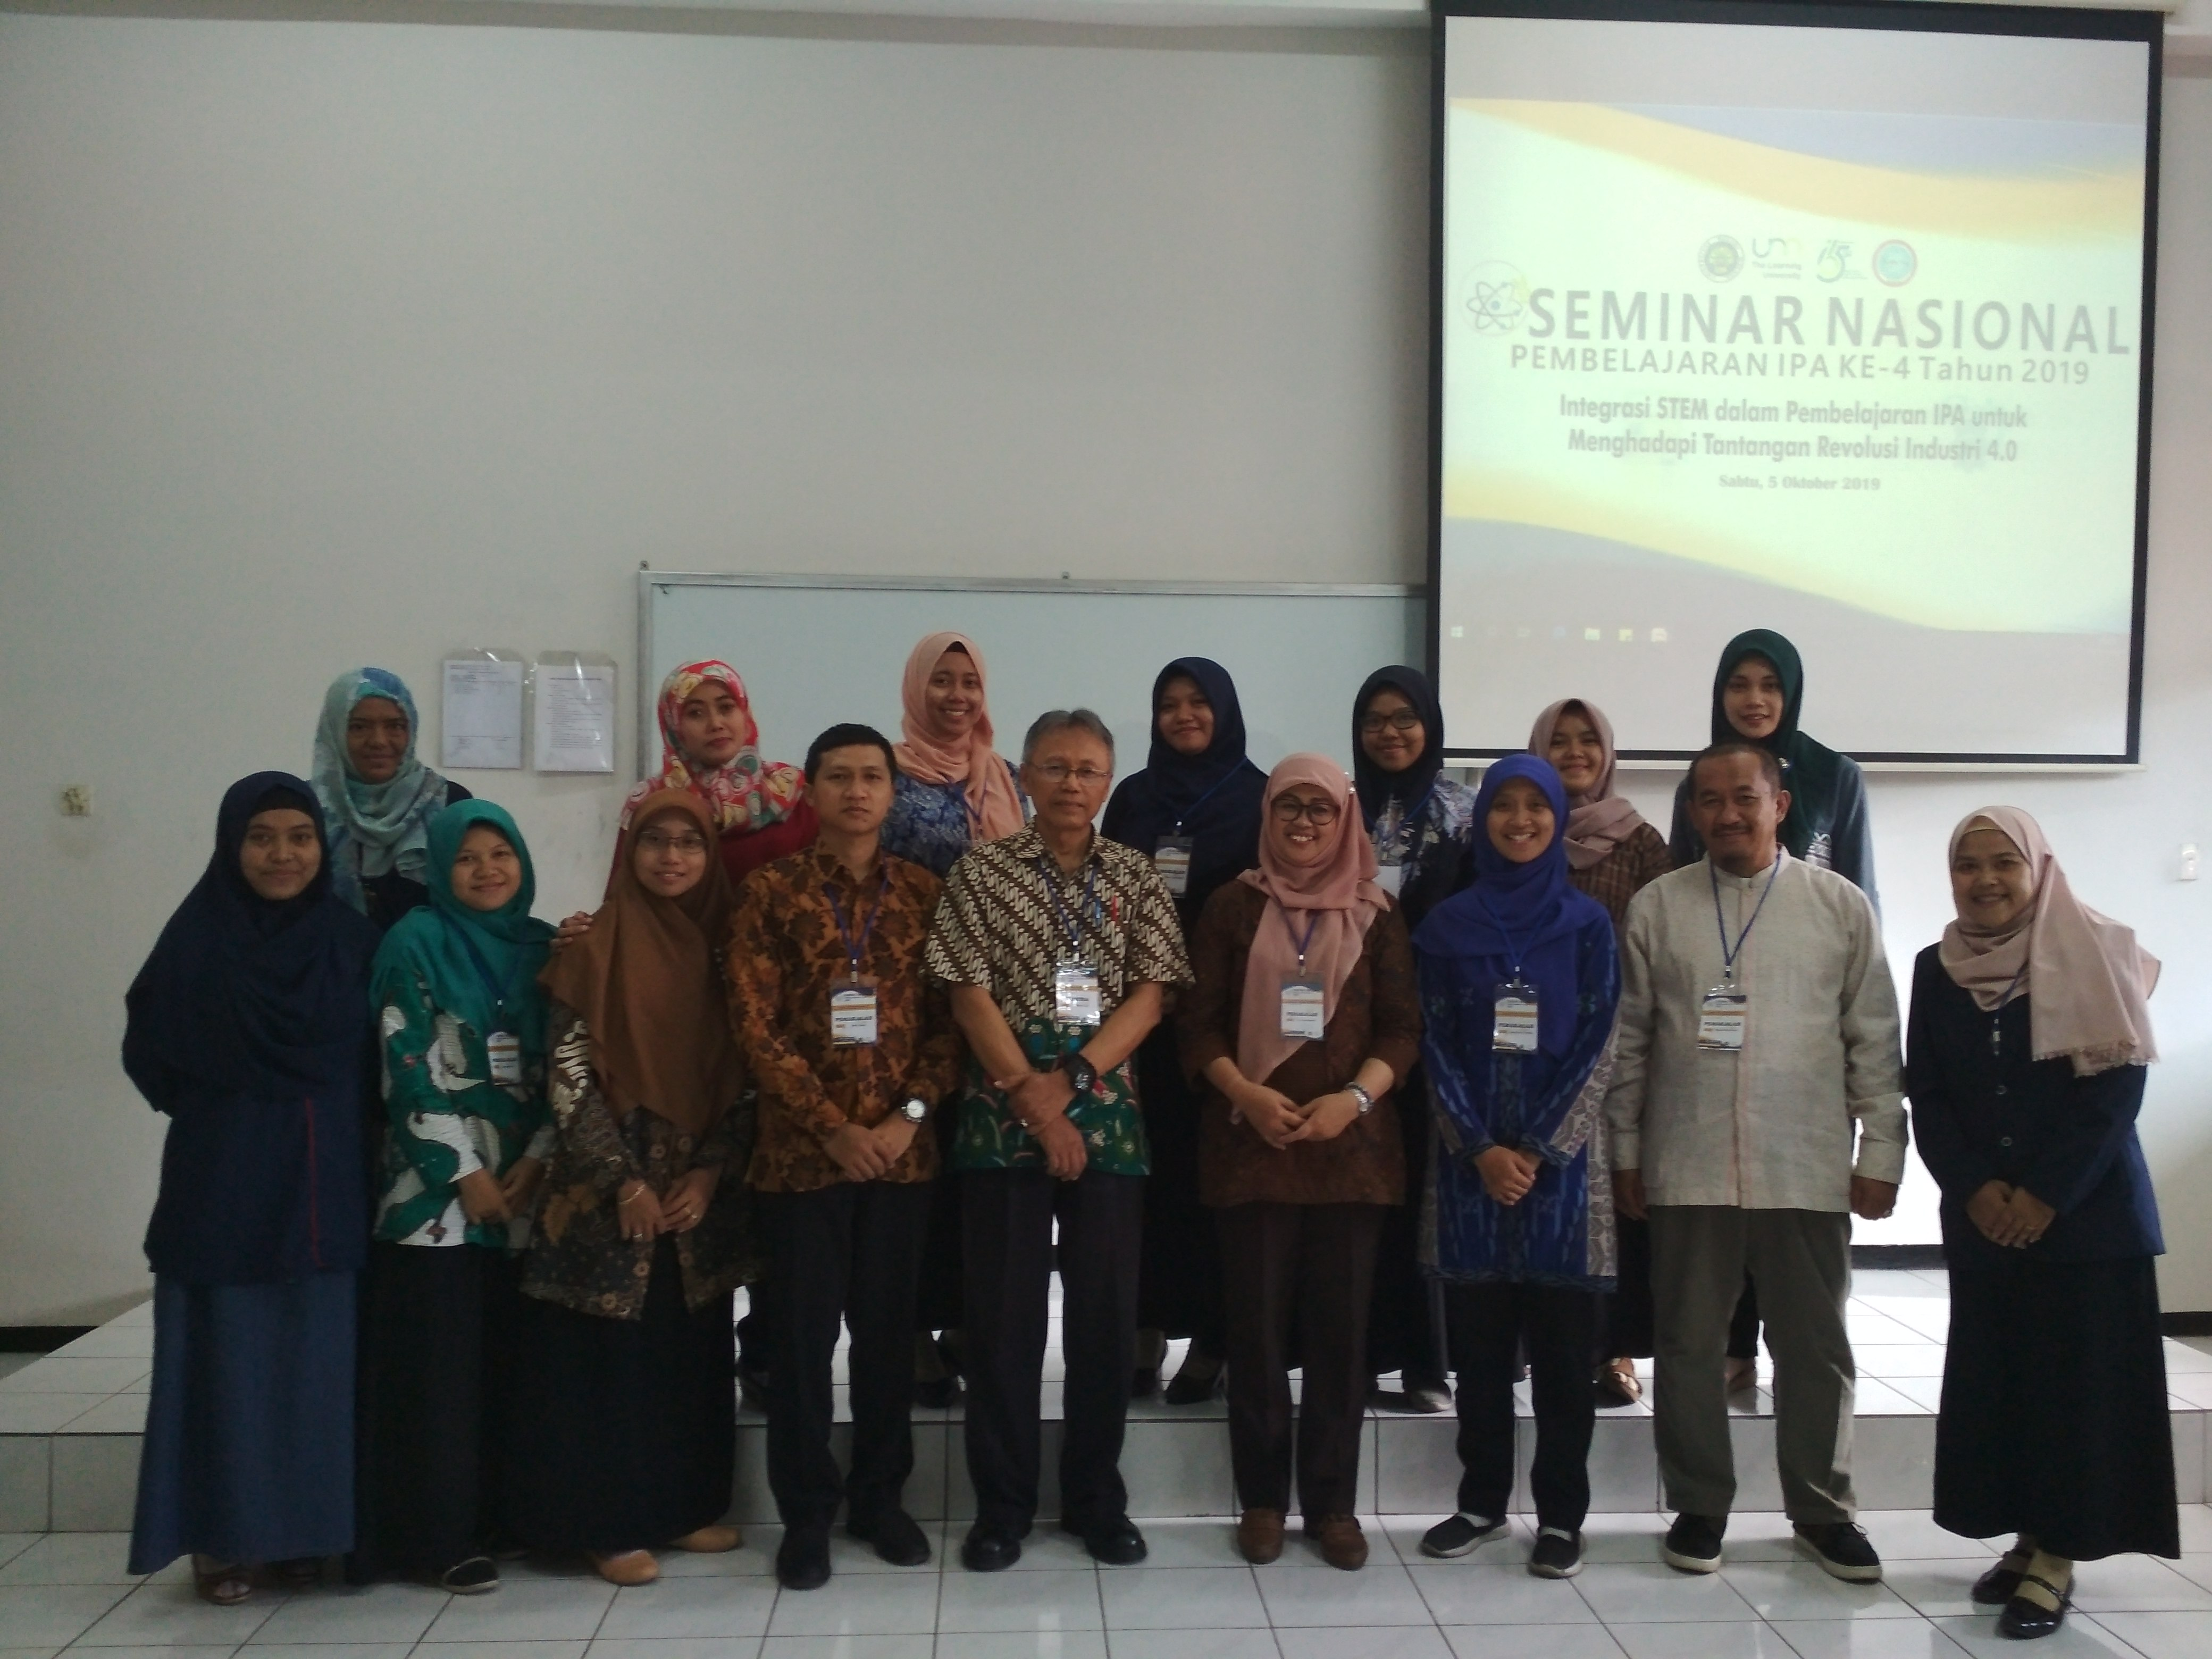 SEAQIS Scientific Publication in the 4th National Seminar on Science Learning at Malang State University